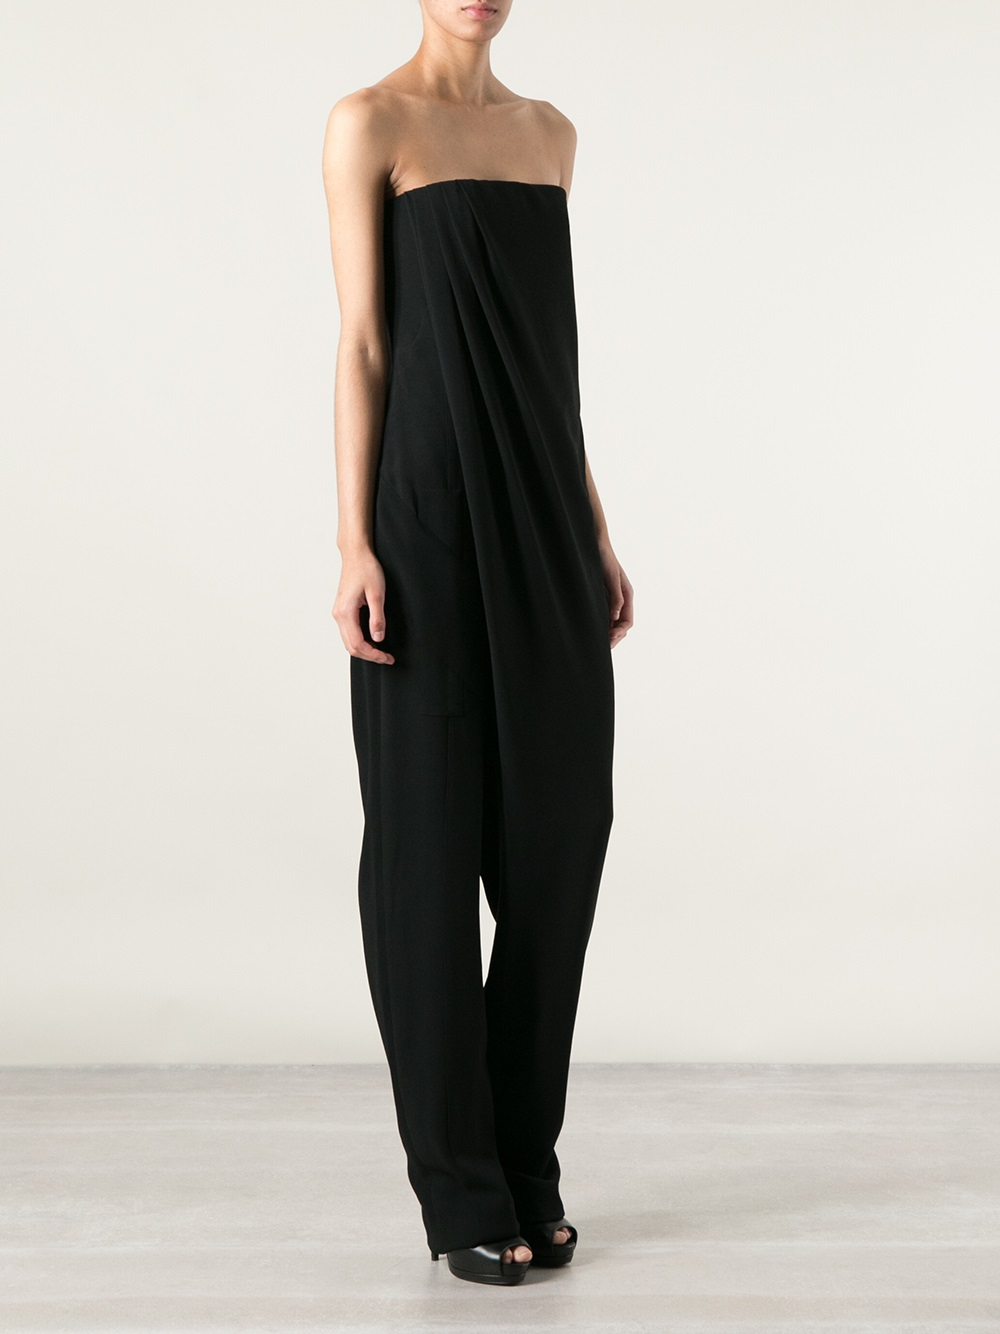 c63af384cd8 Lyst - Givenchy Strapless Draped Jumpsuit in Black